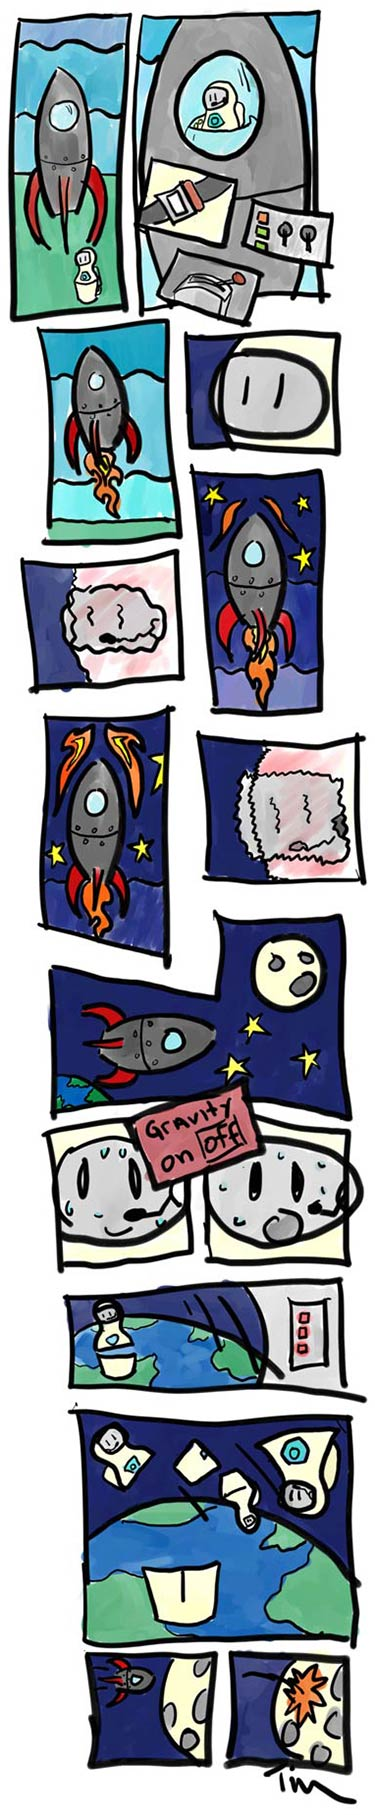 Comic Illustration: Nesting Dolls in Space